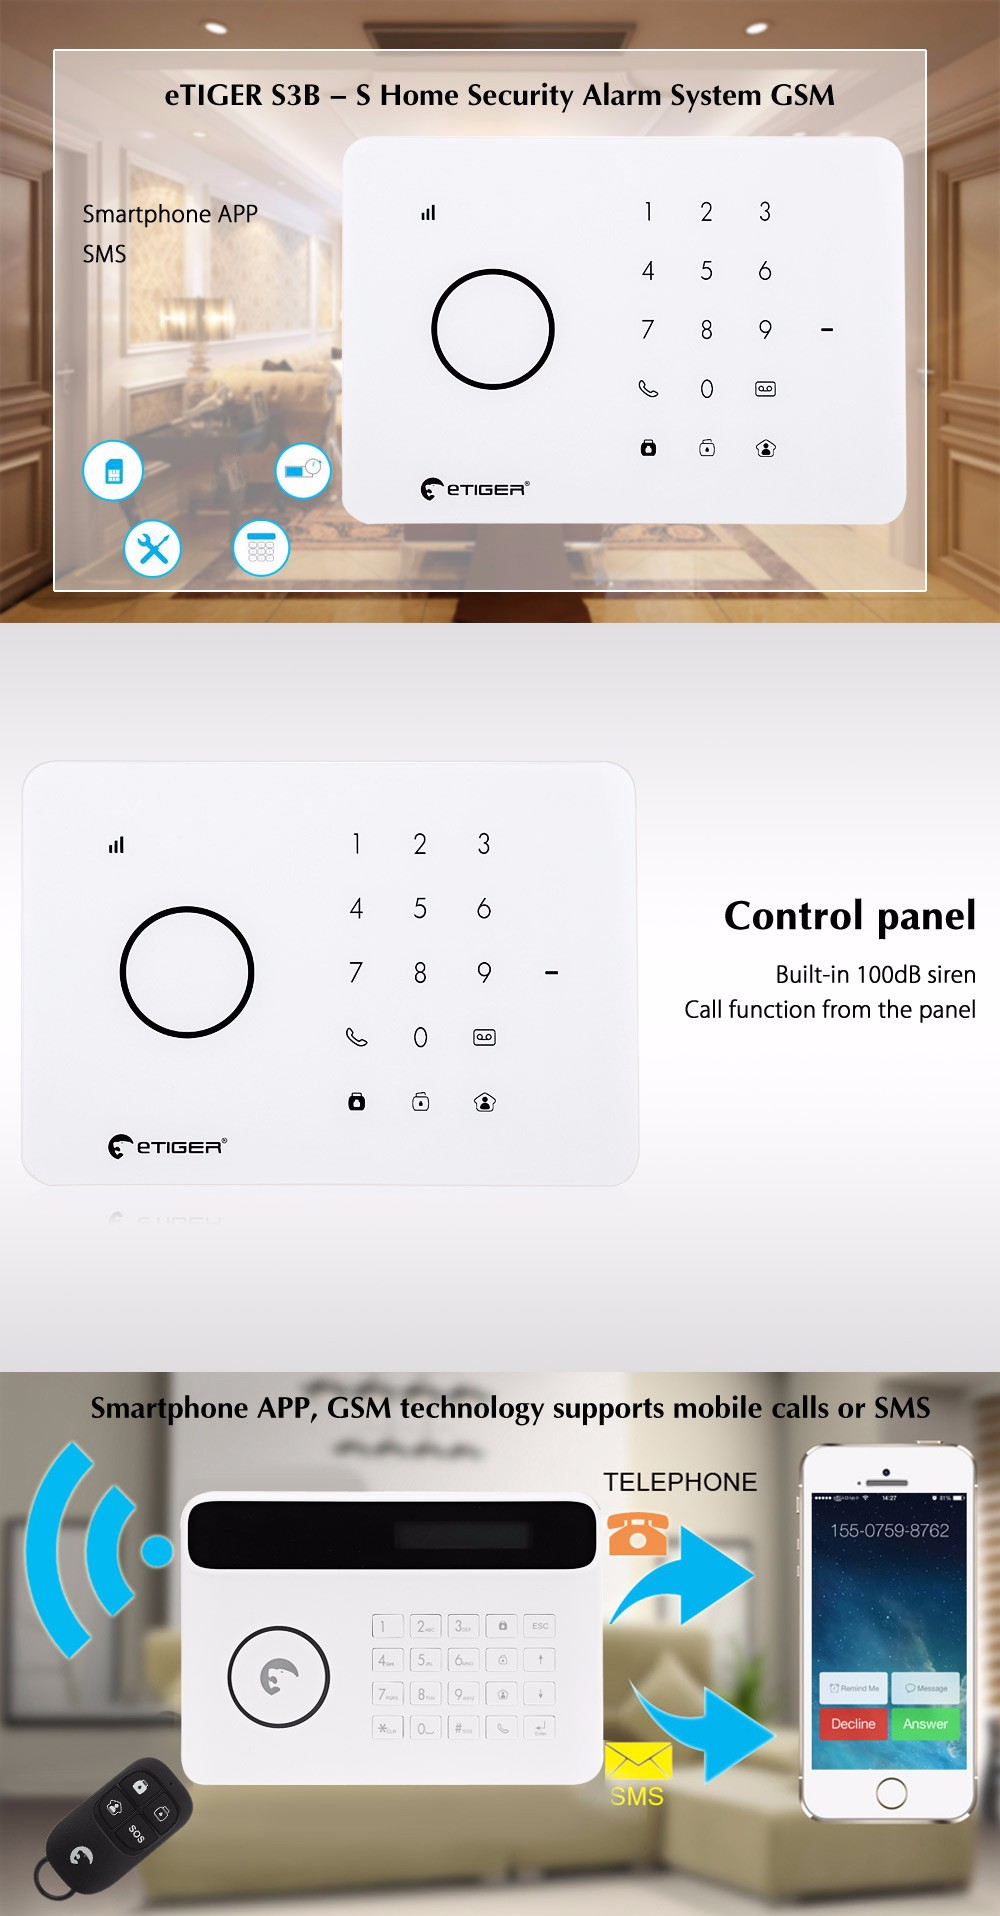 eTIGER S3B - S GSM Wireless Infrared Home Security Alarm System